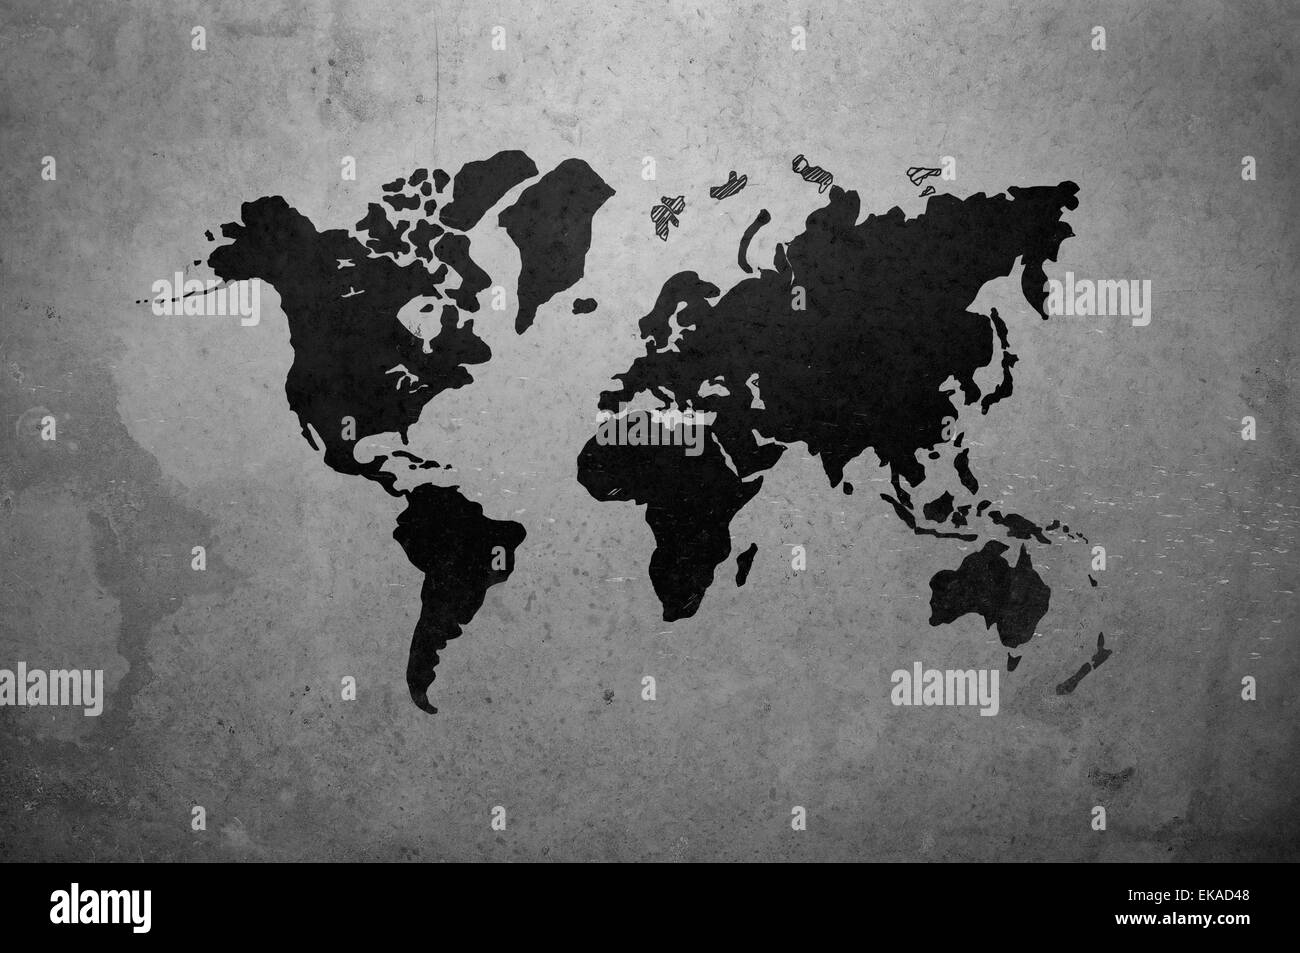 World map drawing on gray concrete wall stock photo 80749768 alamy world map drawing on gray concrete wall gumiabroncs Choice Image